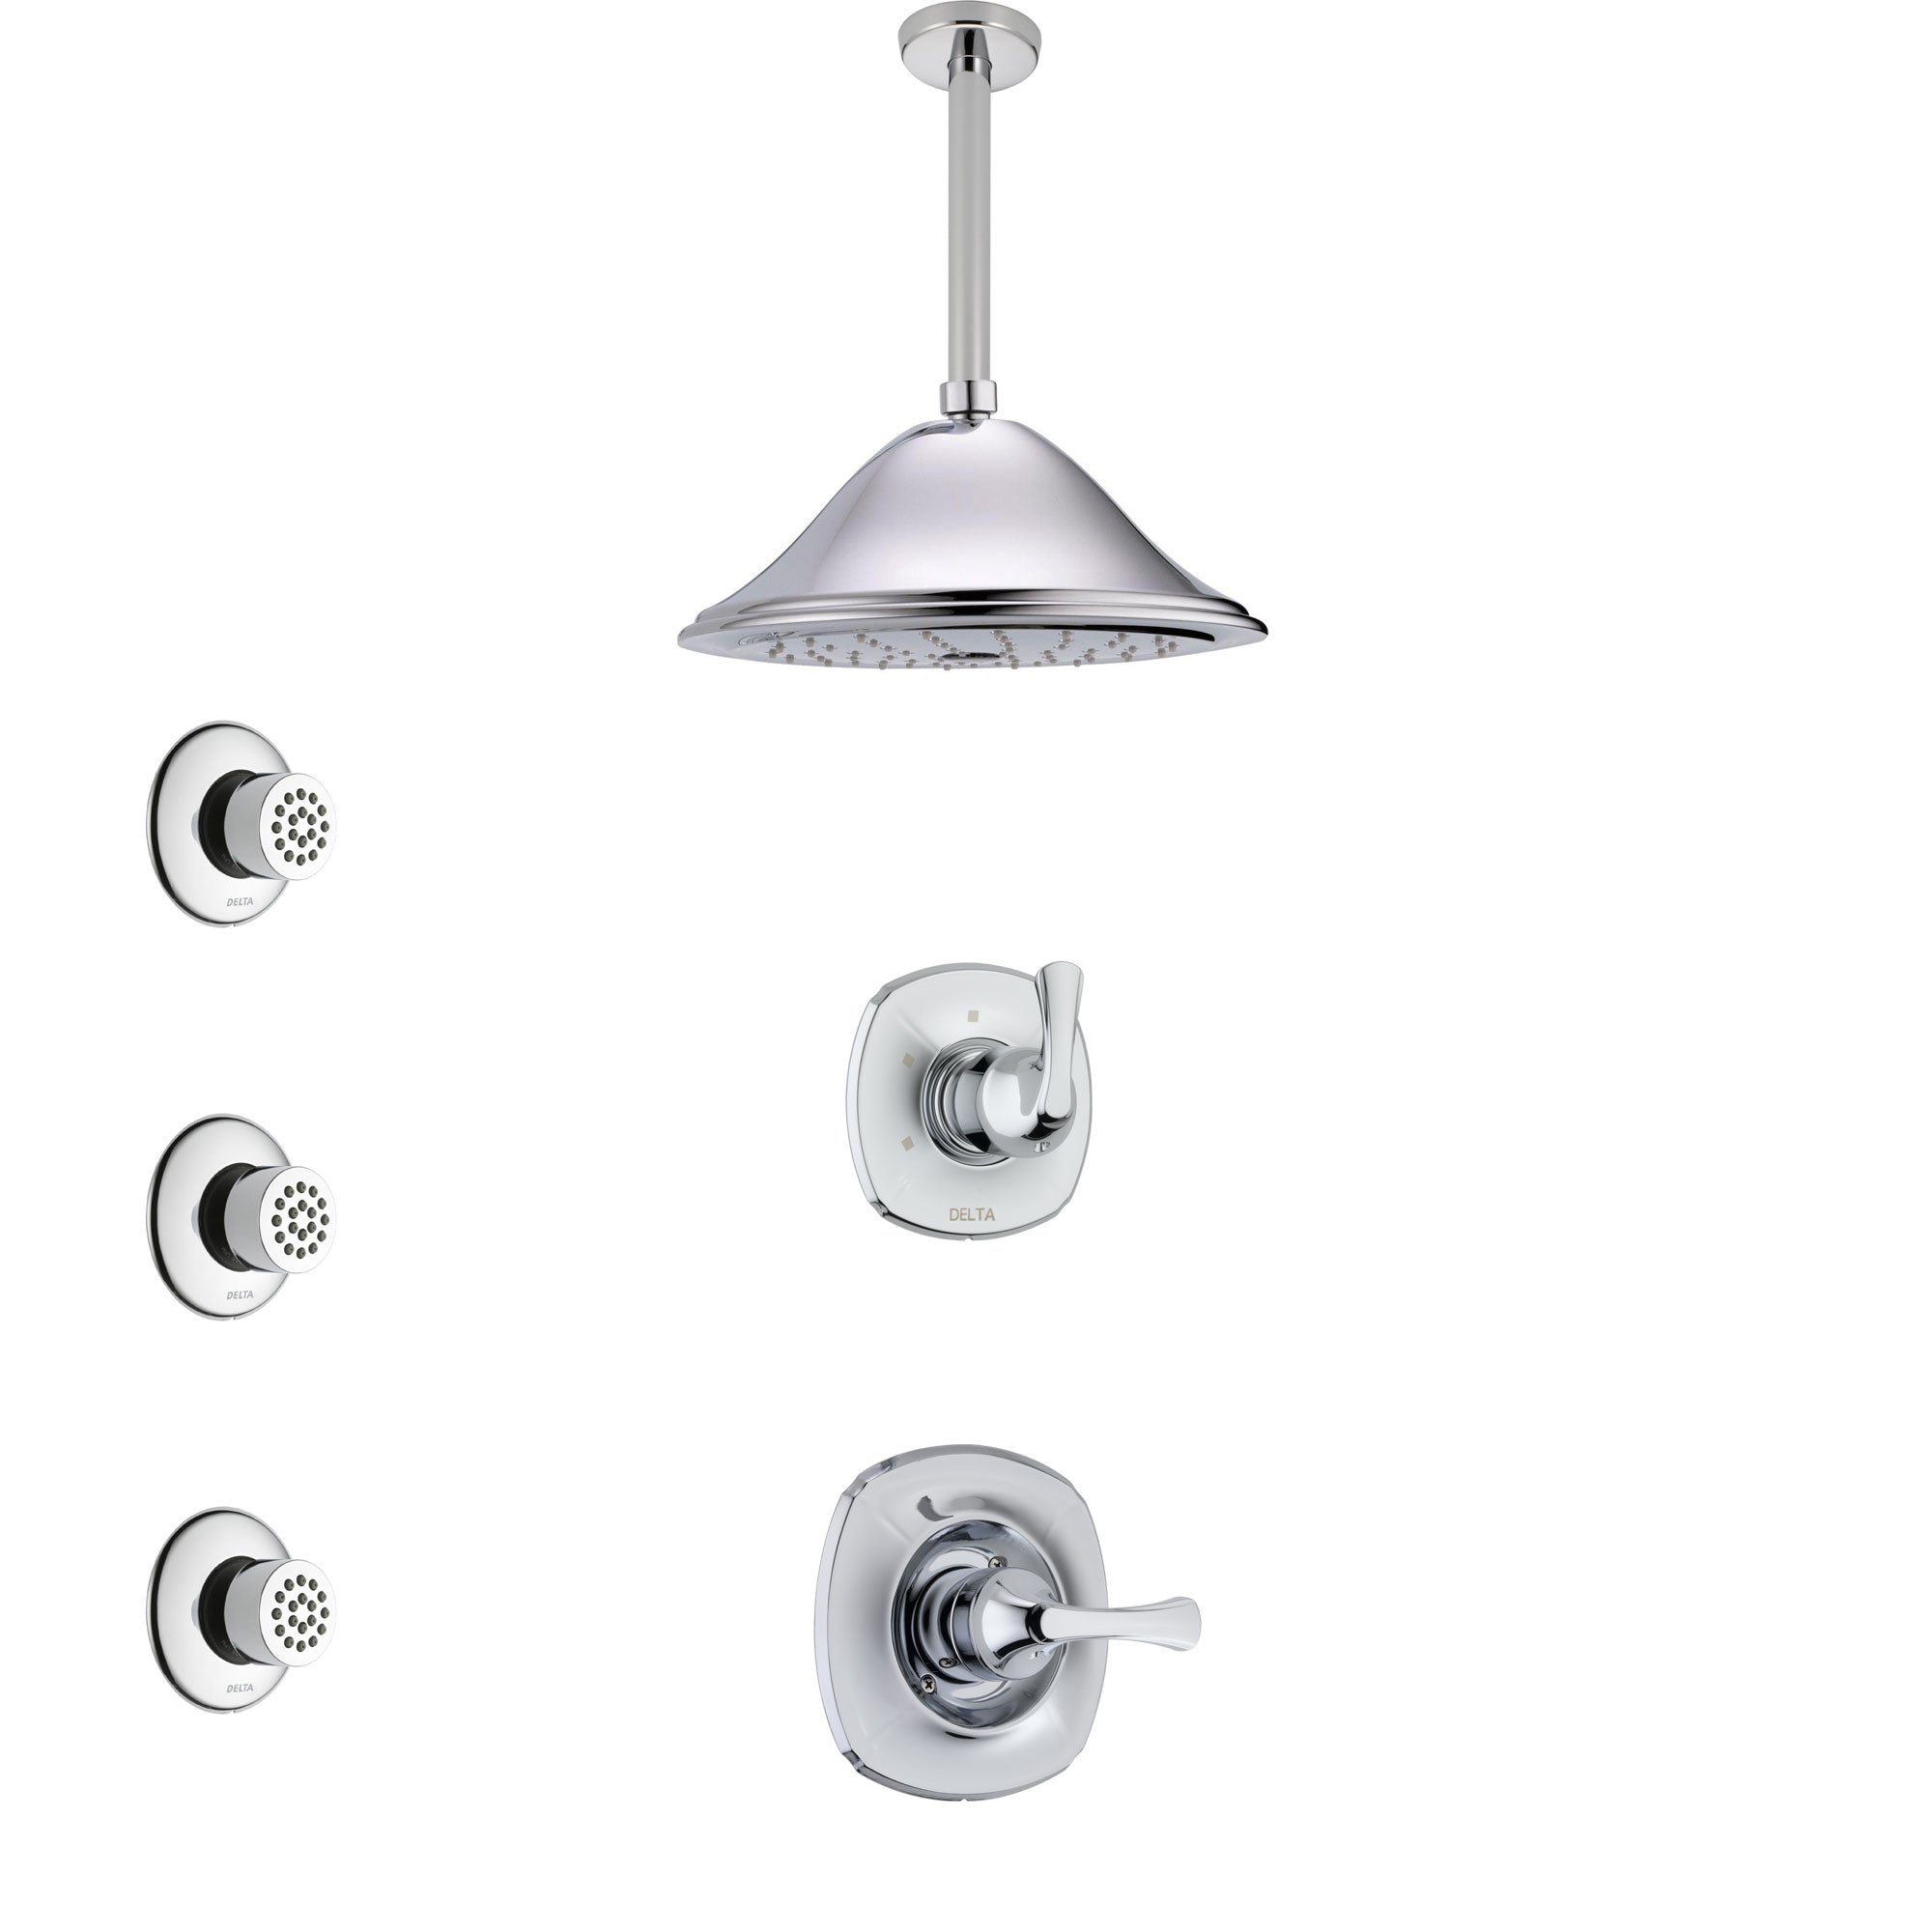 Delta Addison Chrome Finish Shower System with Control Handle, 3-Setting Diverter, Ceiling Mount Showerhead, and 3 Body Sprays SS14923